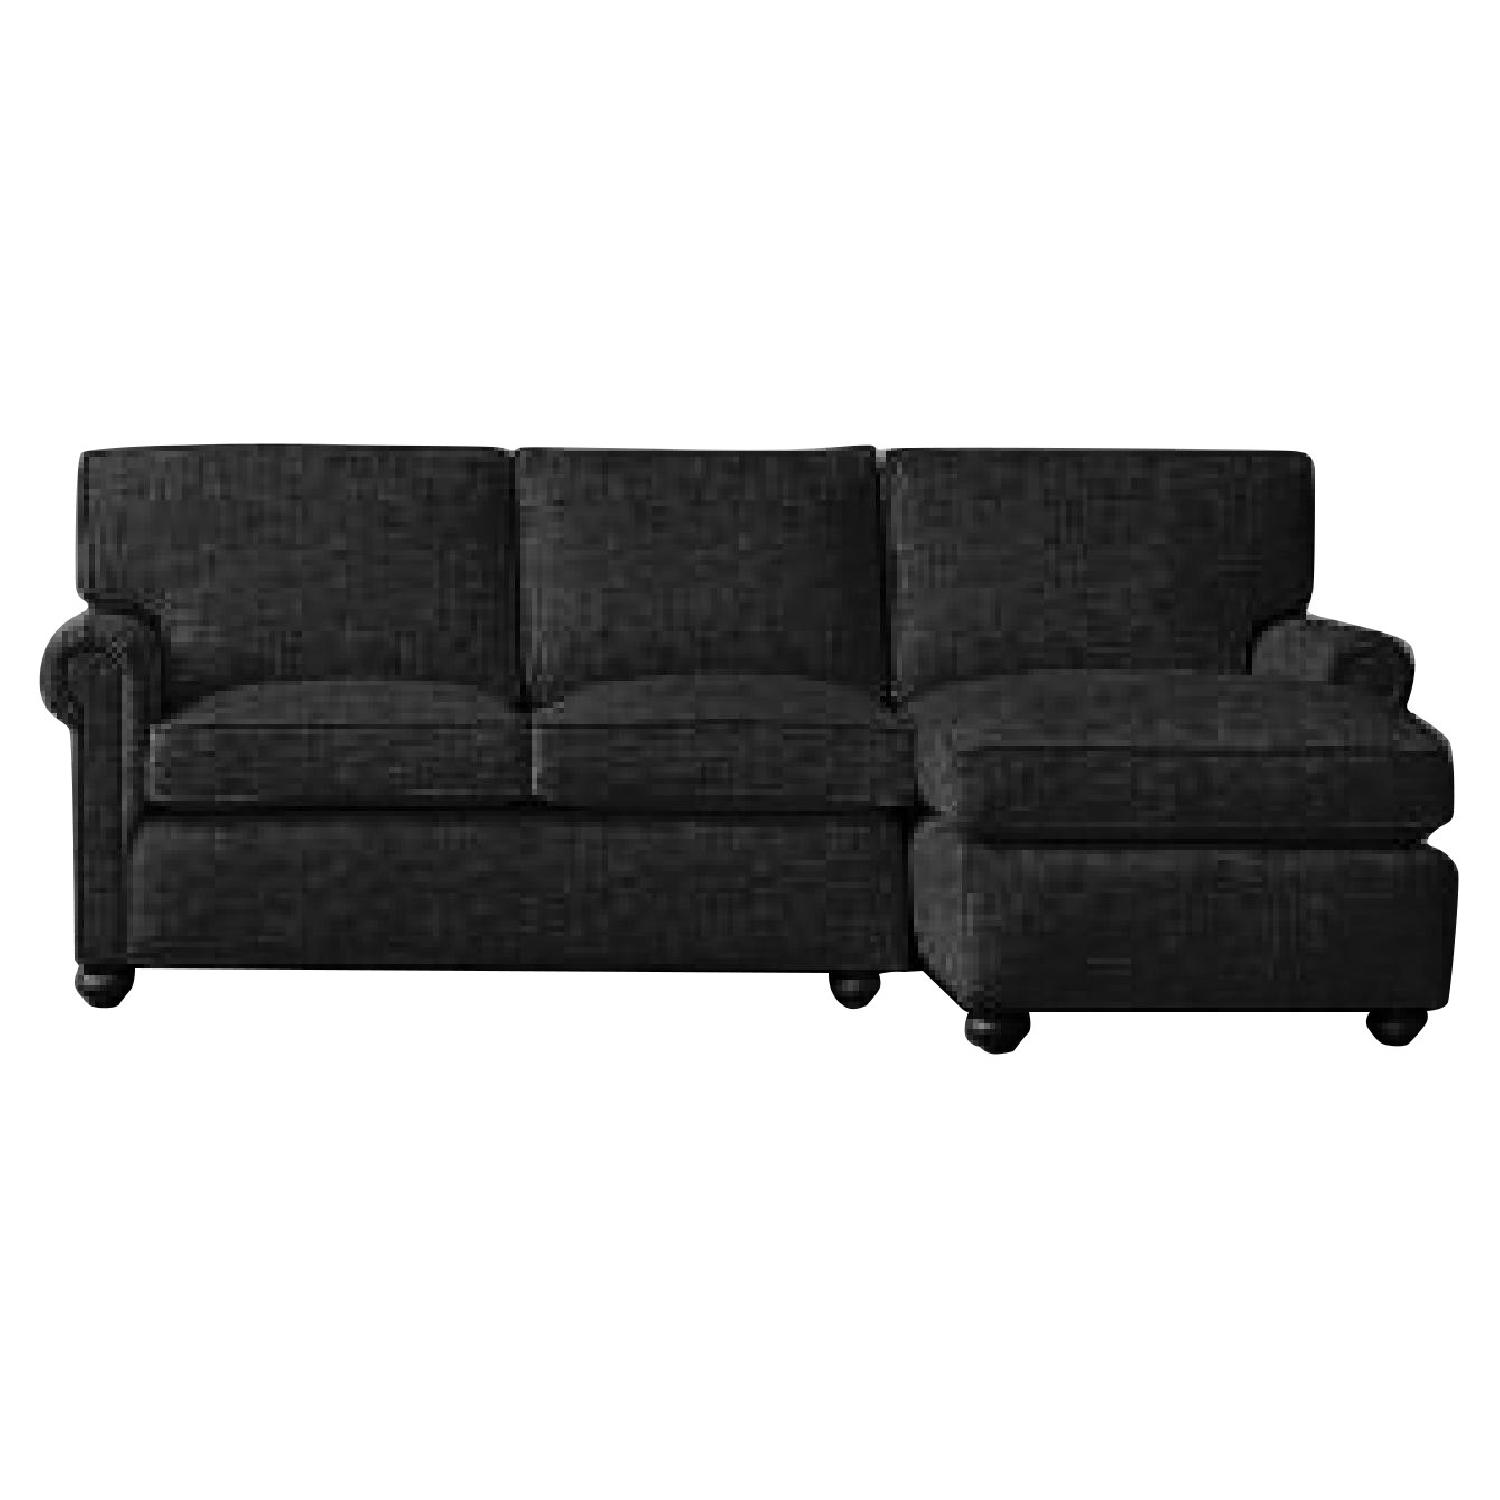 sofas hardware fabric full and modern outdoor sofa spaces board farmers room of furniture reviews for sectional size functional small restoration rooms living